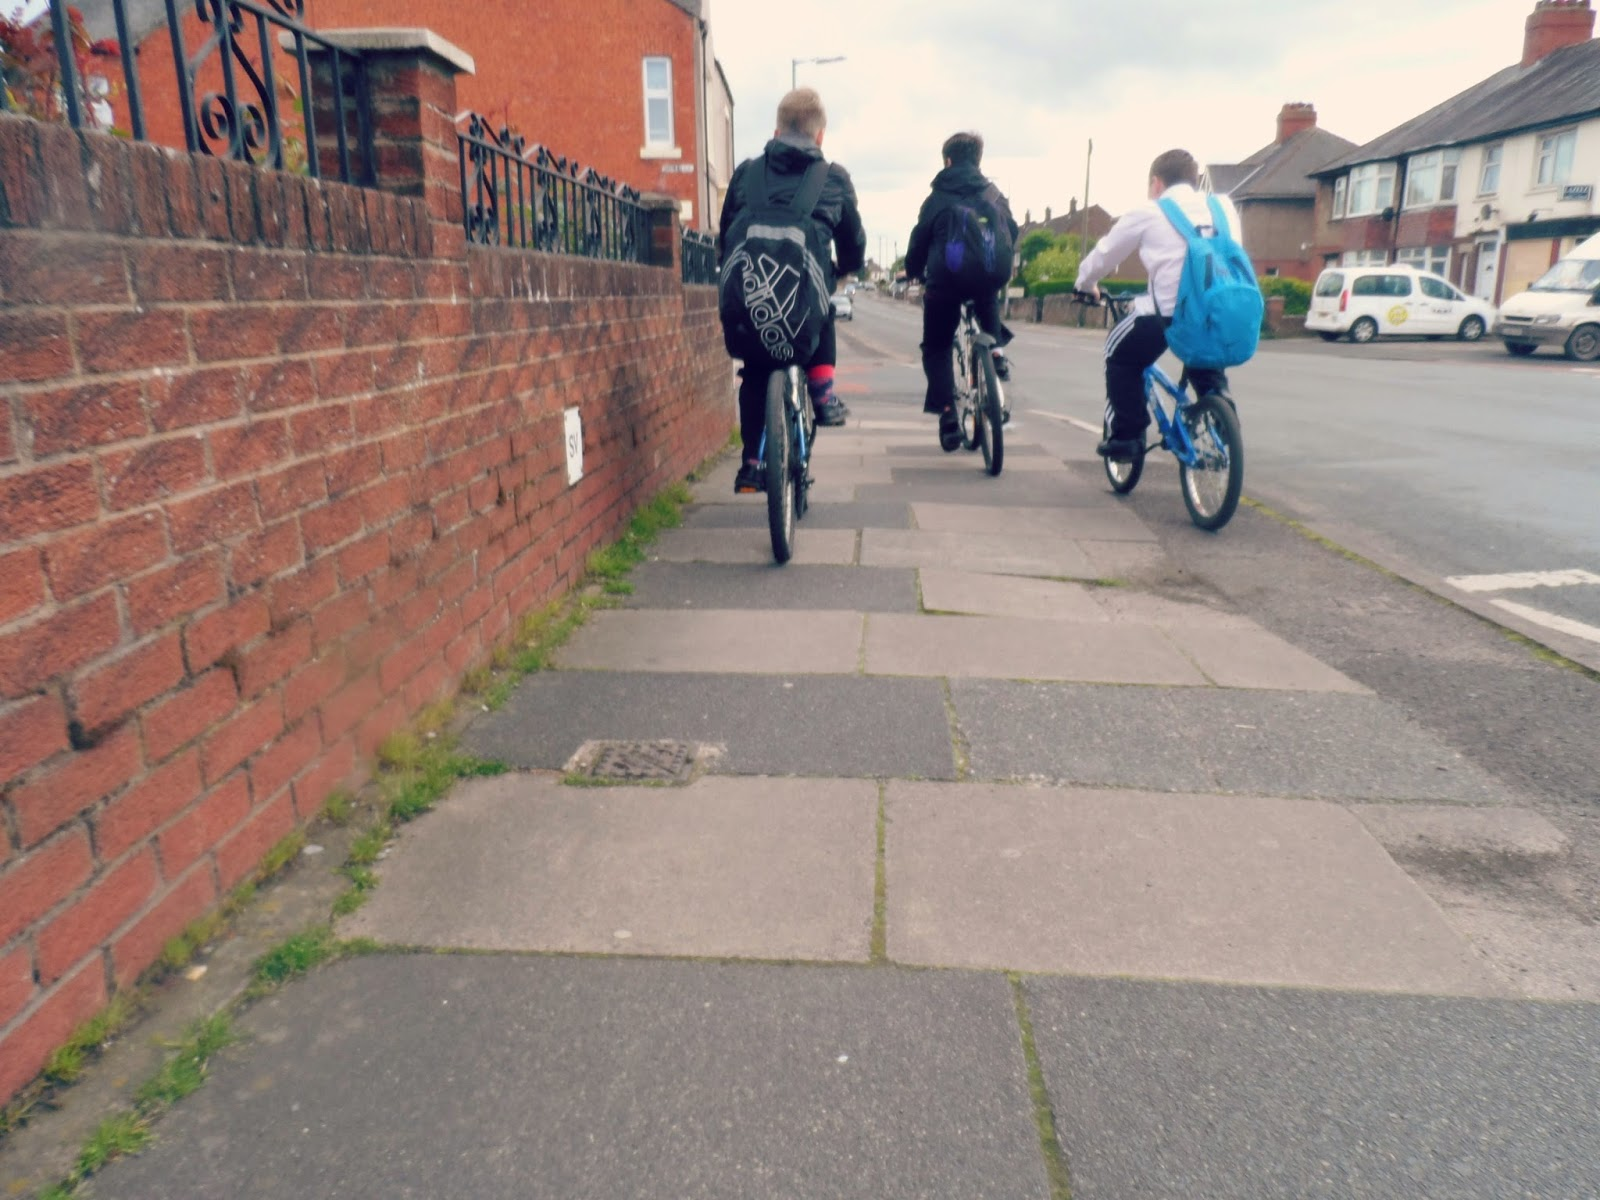 A photographic essay of a journey home from school taken from the child's point of view.